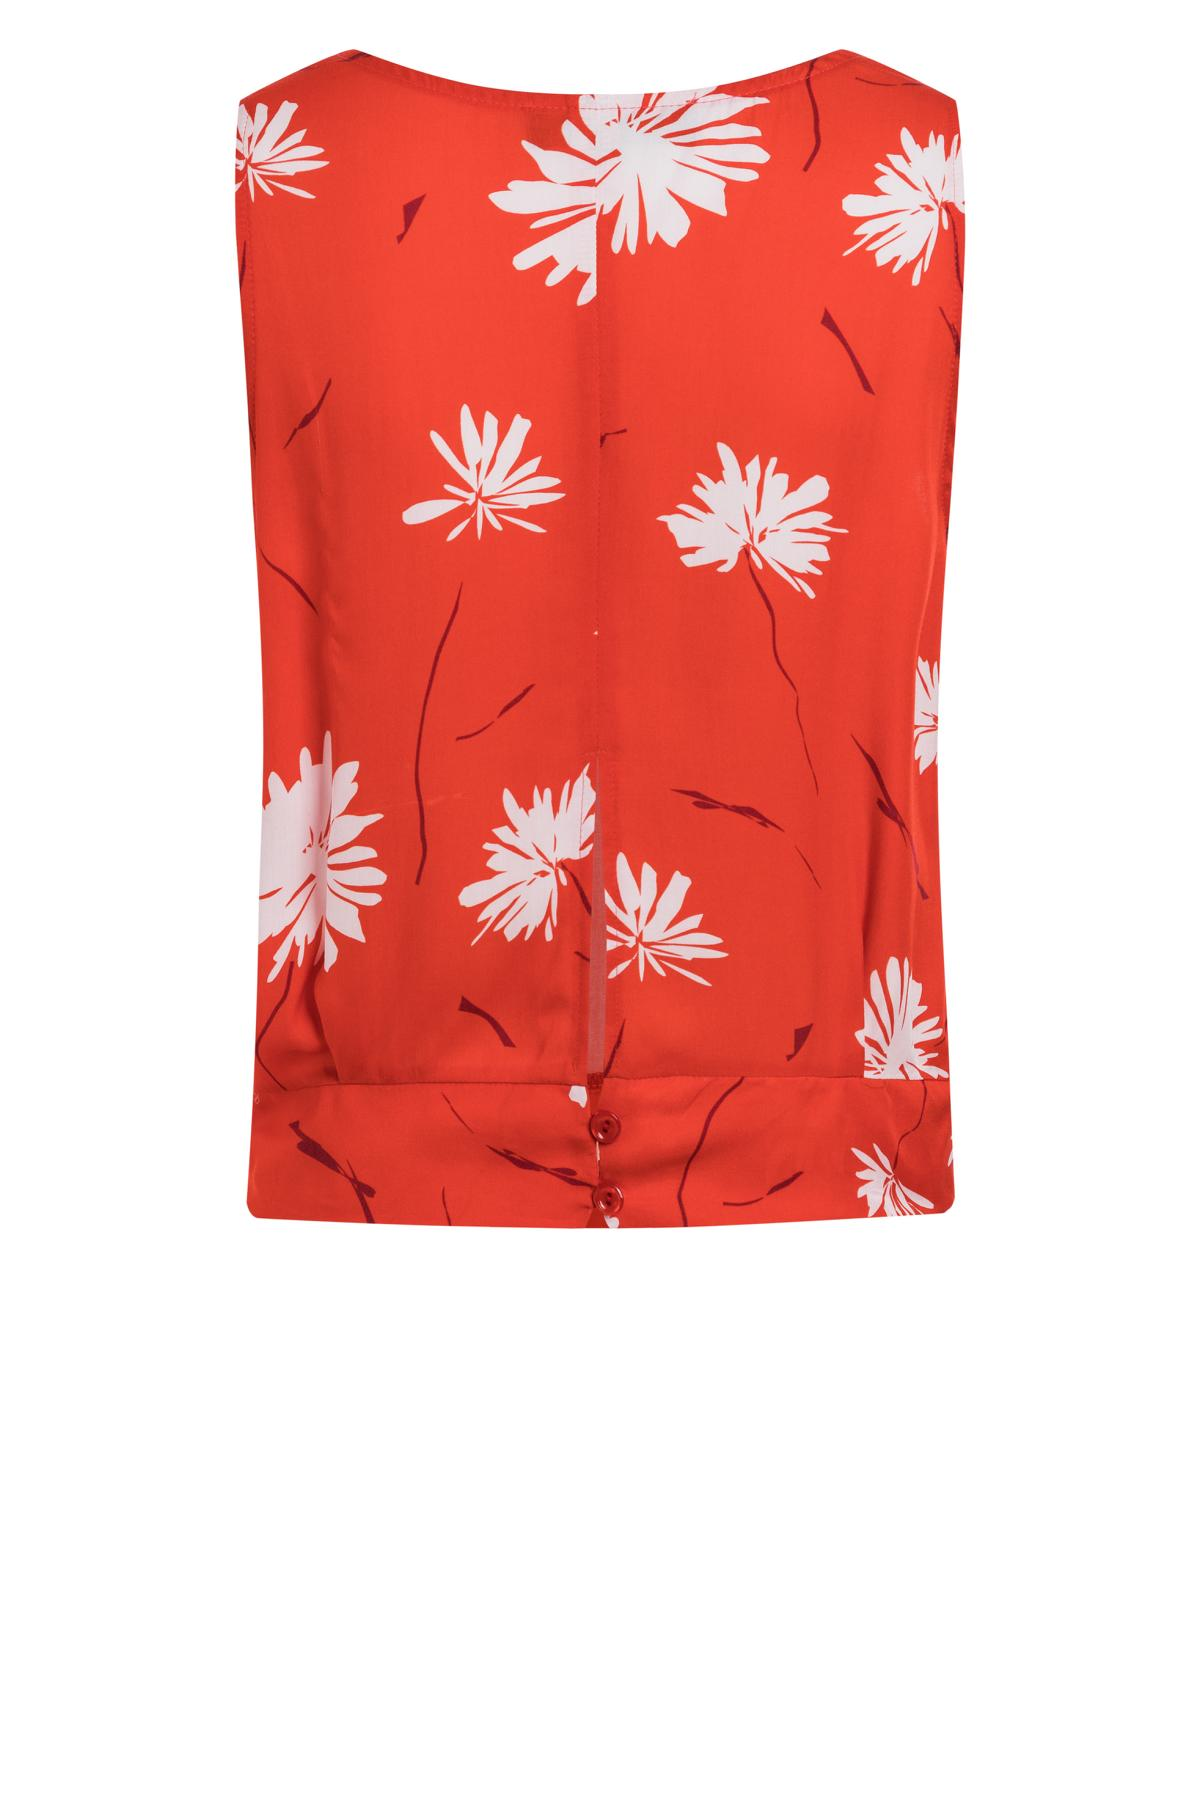 PRODUCT_PICTURE_PRE_7Ana Alcazar Sommer Top Taxnos PRODUCT_PICTURE_SUF_7